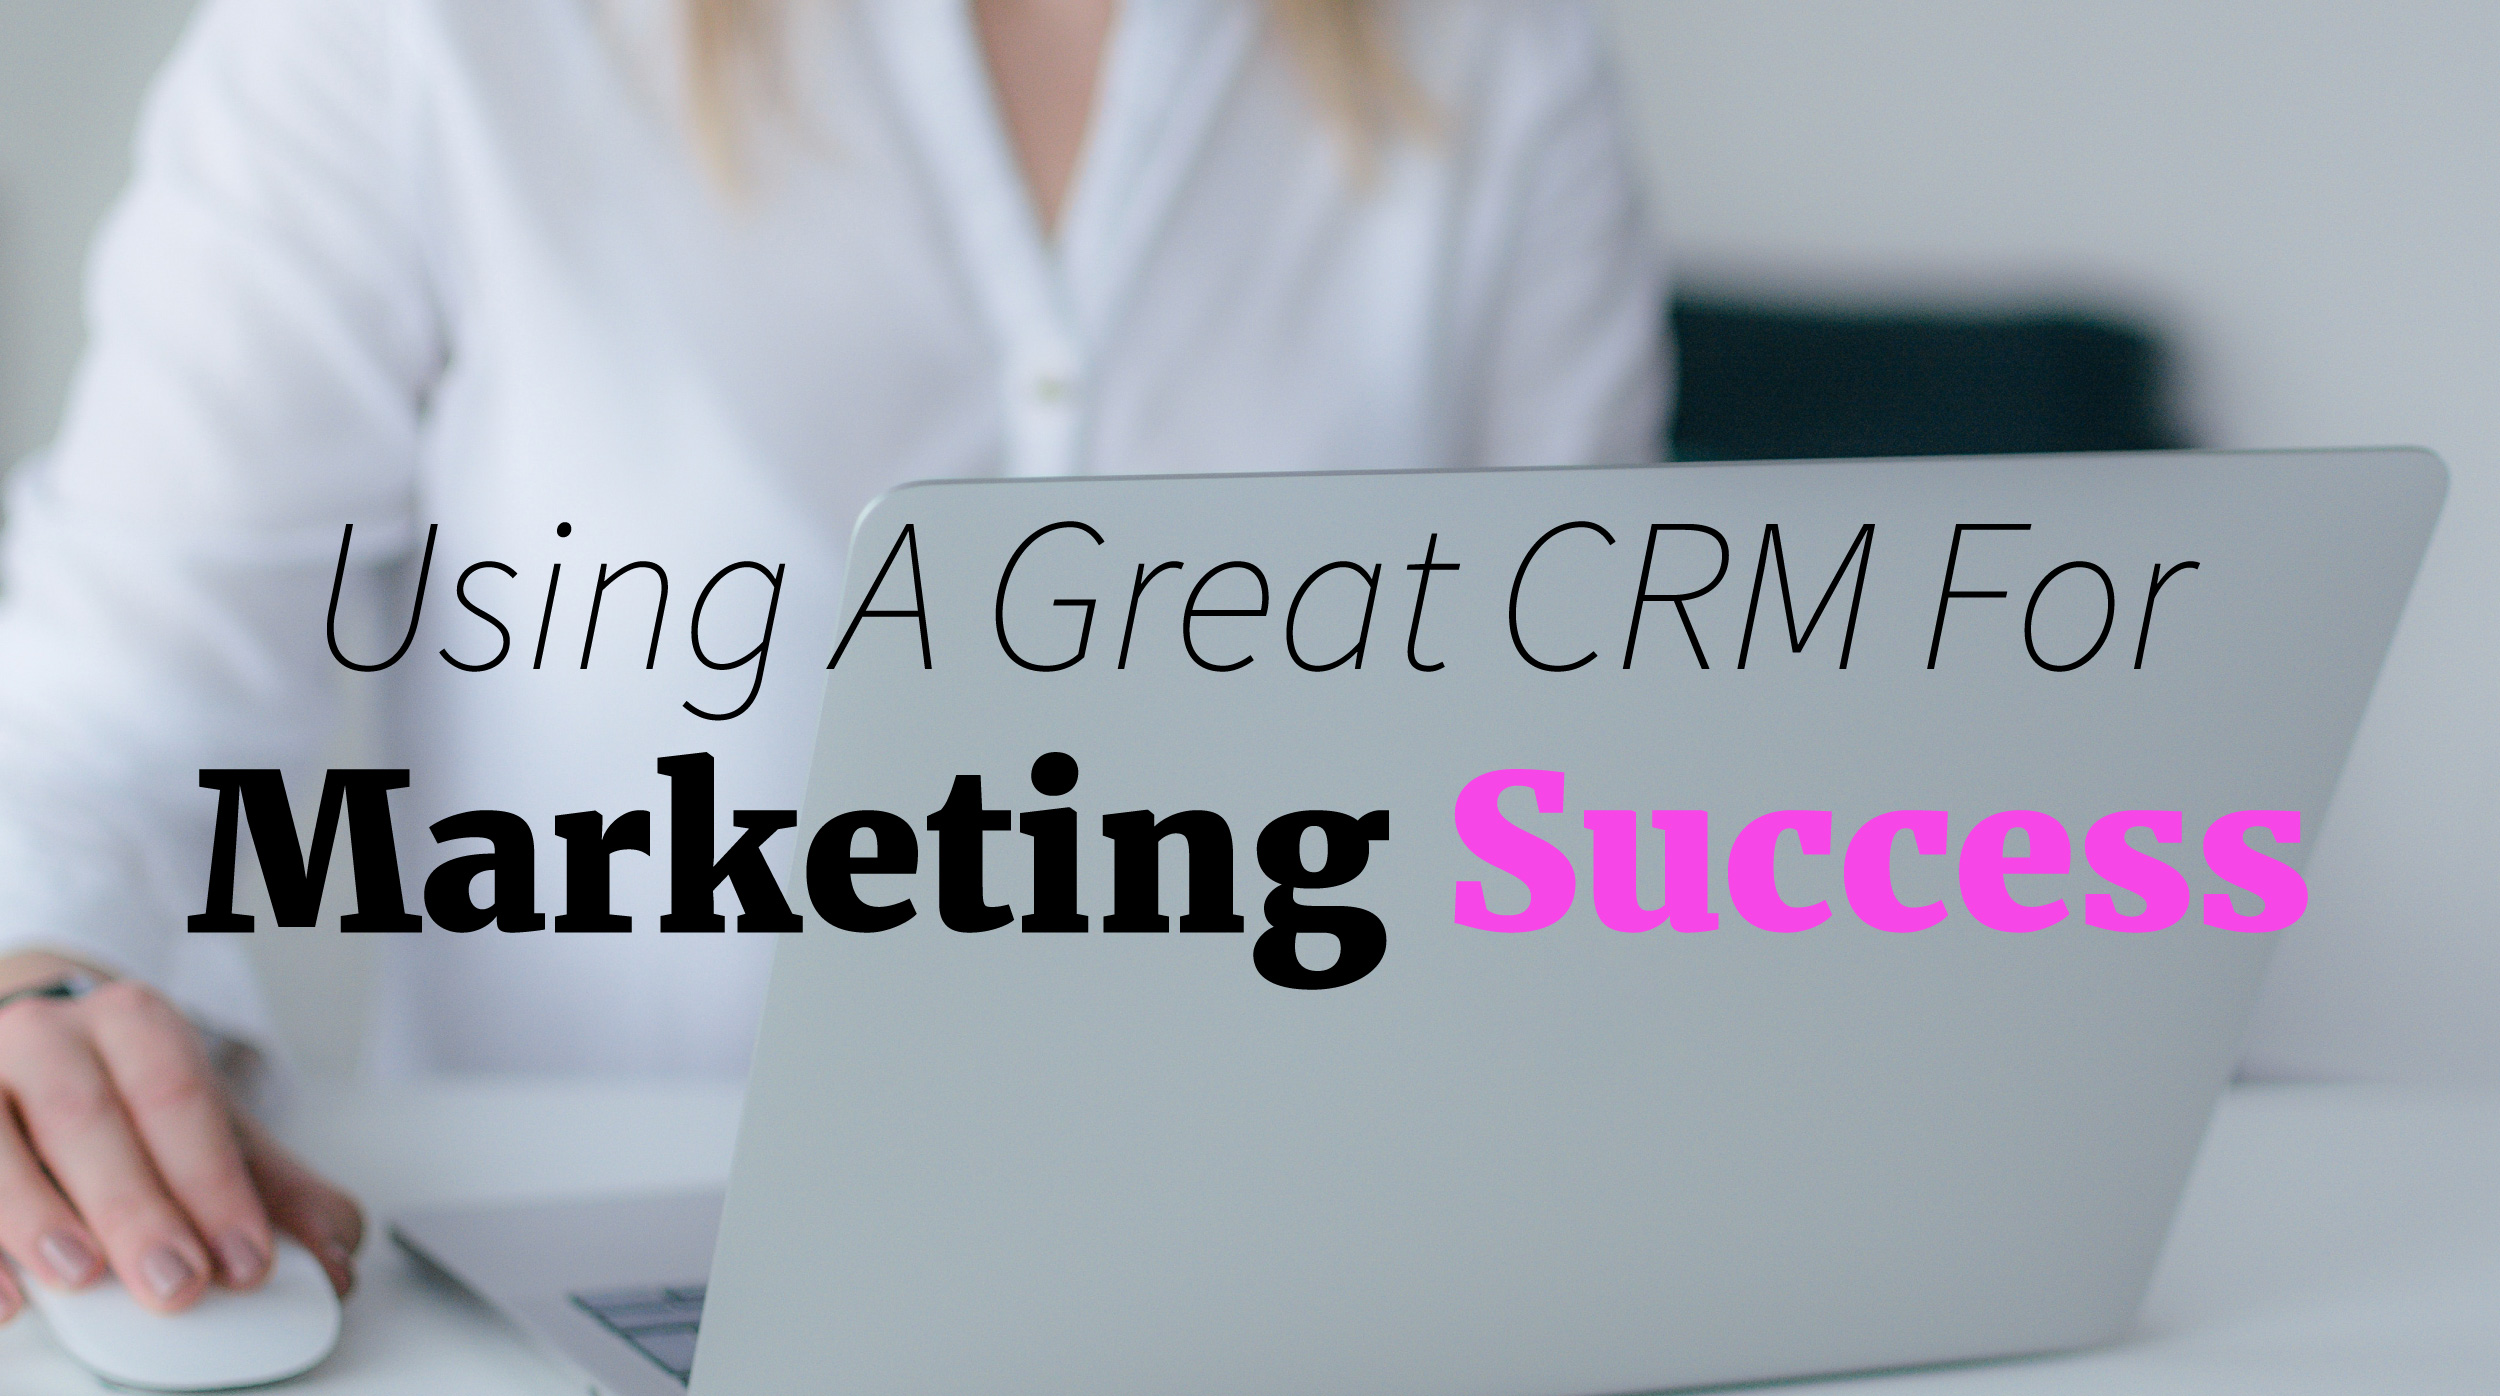 CRMs for Marketing Success